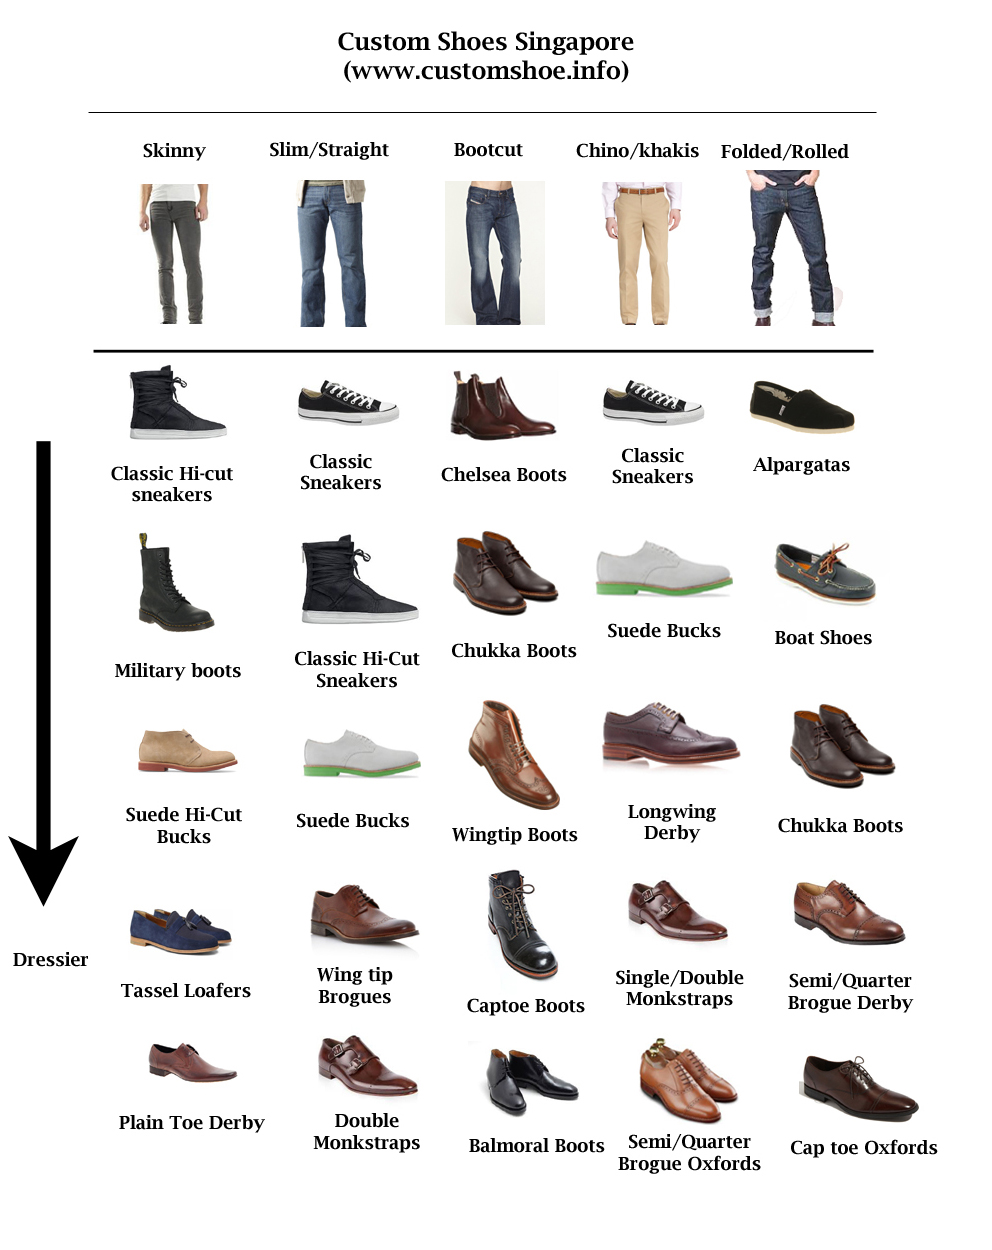 How To Dress Better With Shoes Jeans And Impress The Ladies Custommade